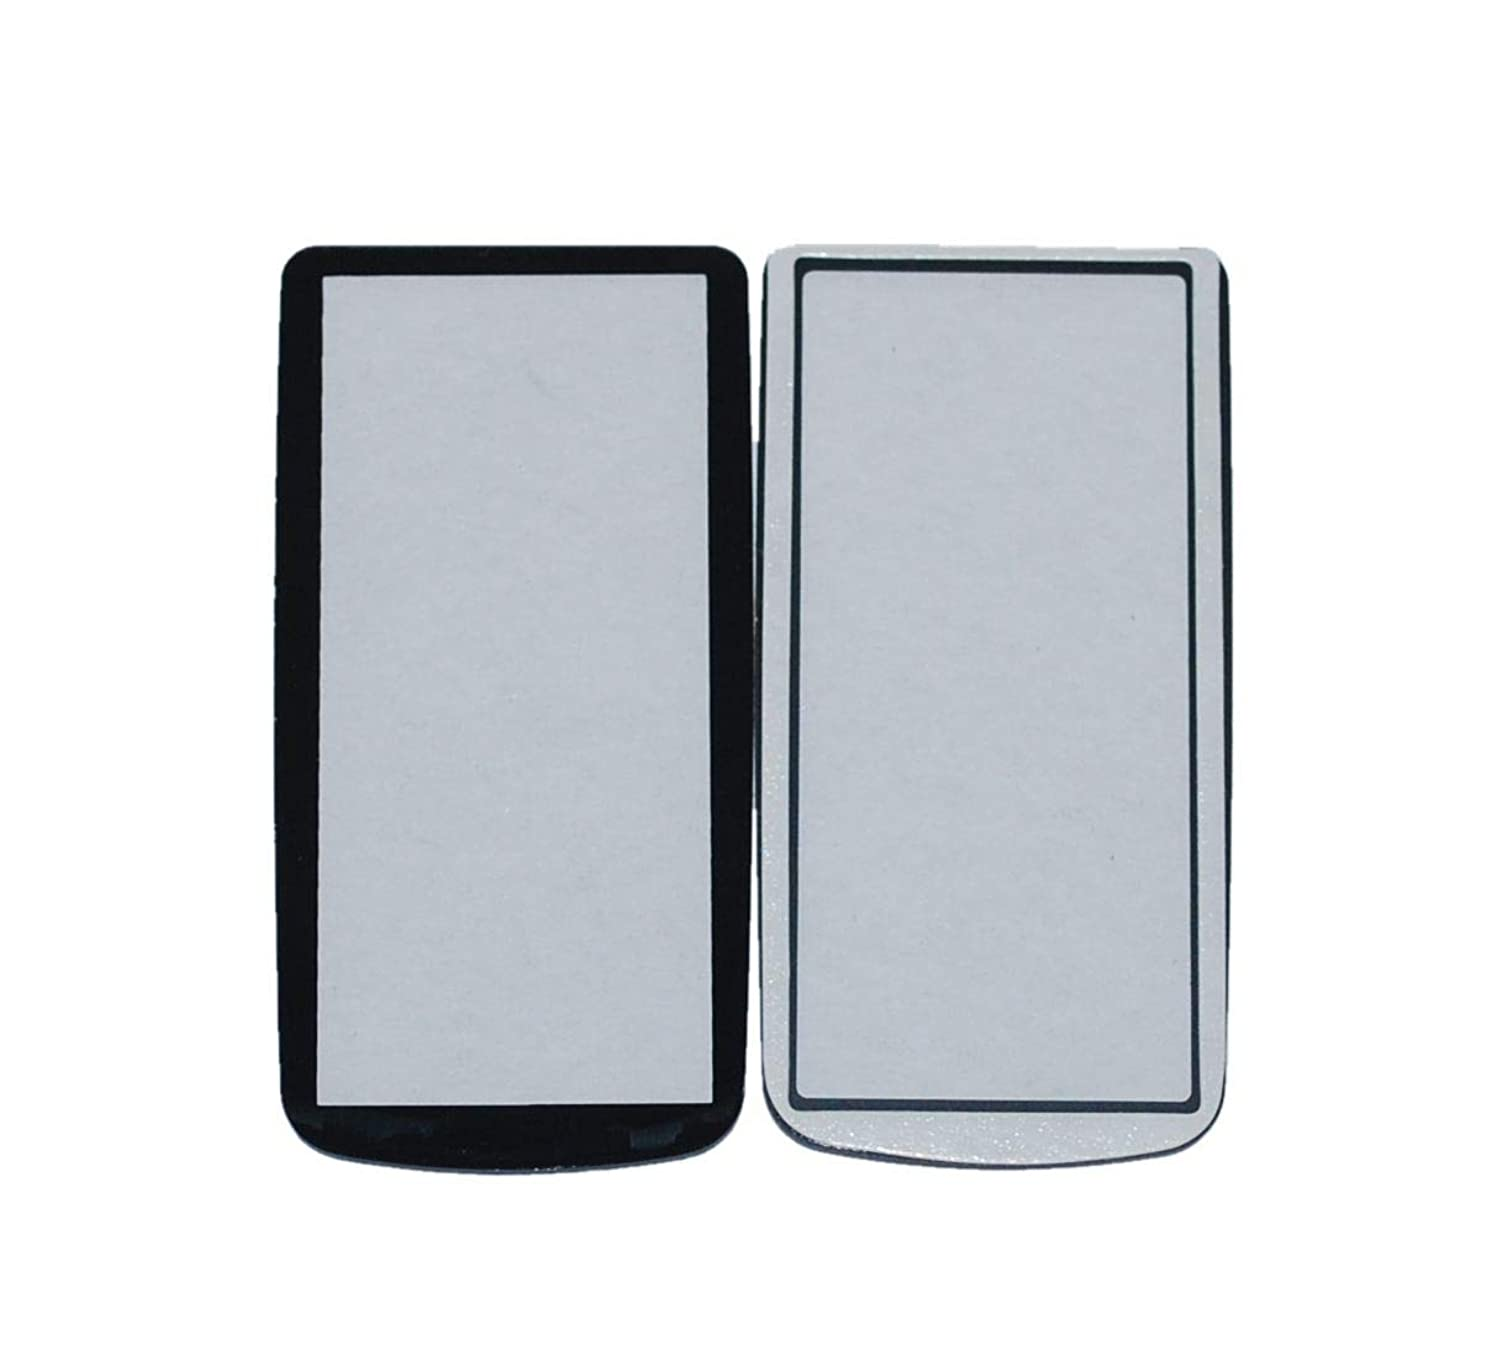 New Top Cover Small LCD Screen Outer Window Glass Protector Replacement With Tape For Nikon D300 D300S Digital Camera